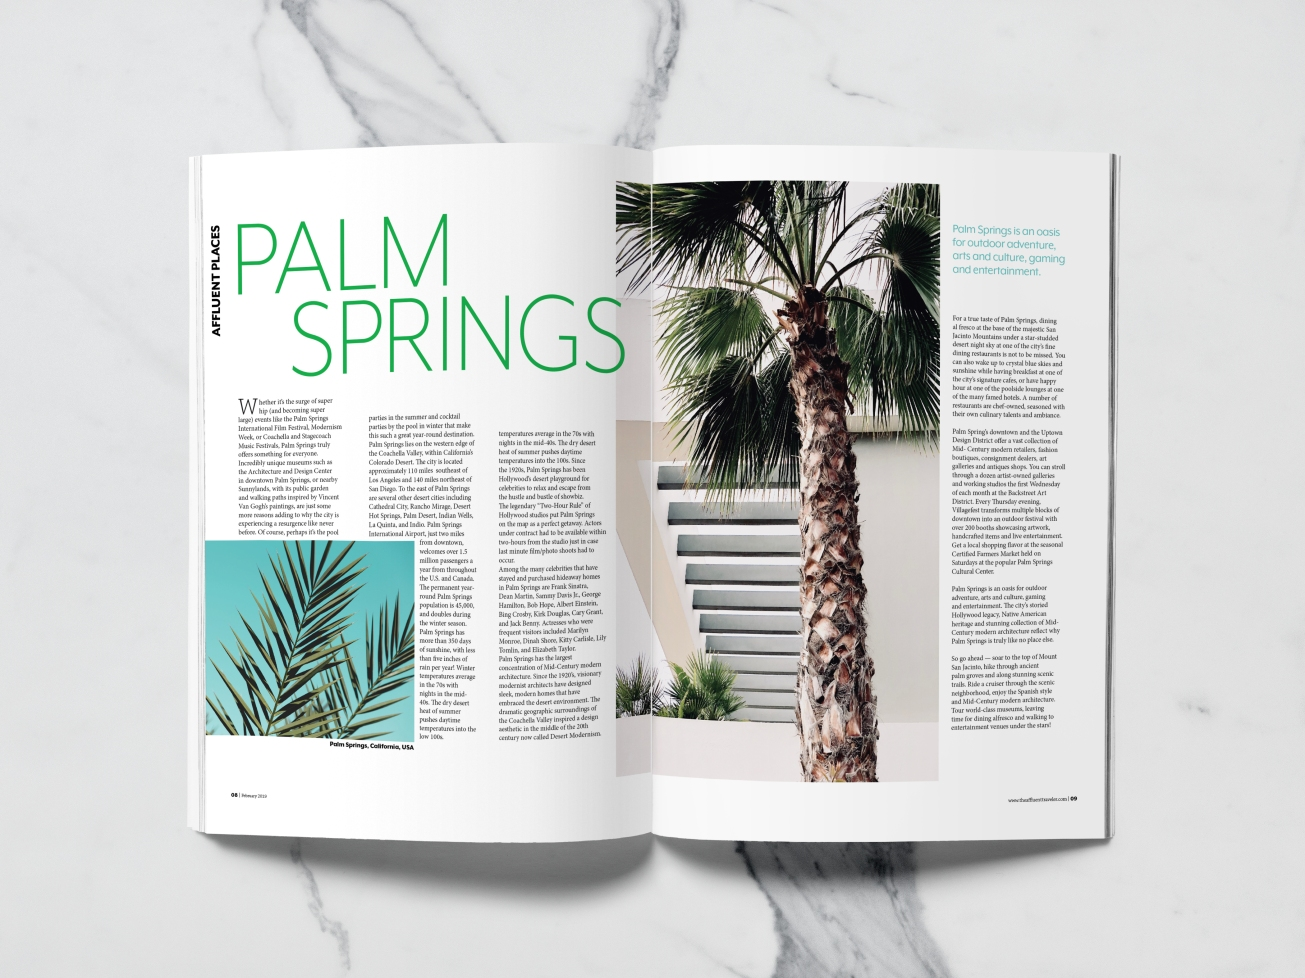 PALM SPRINGS MOCKUP copy